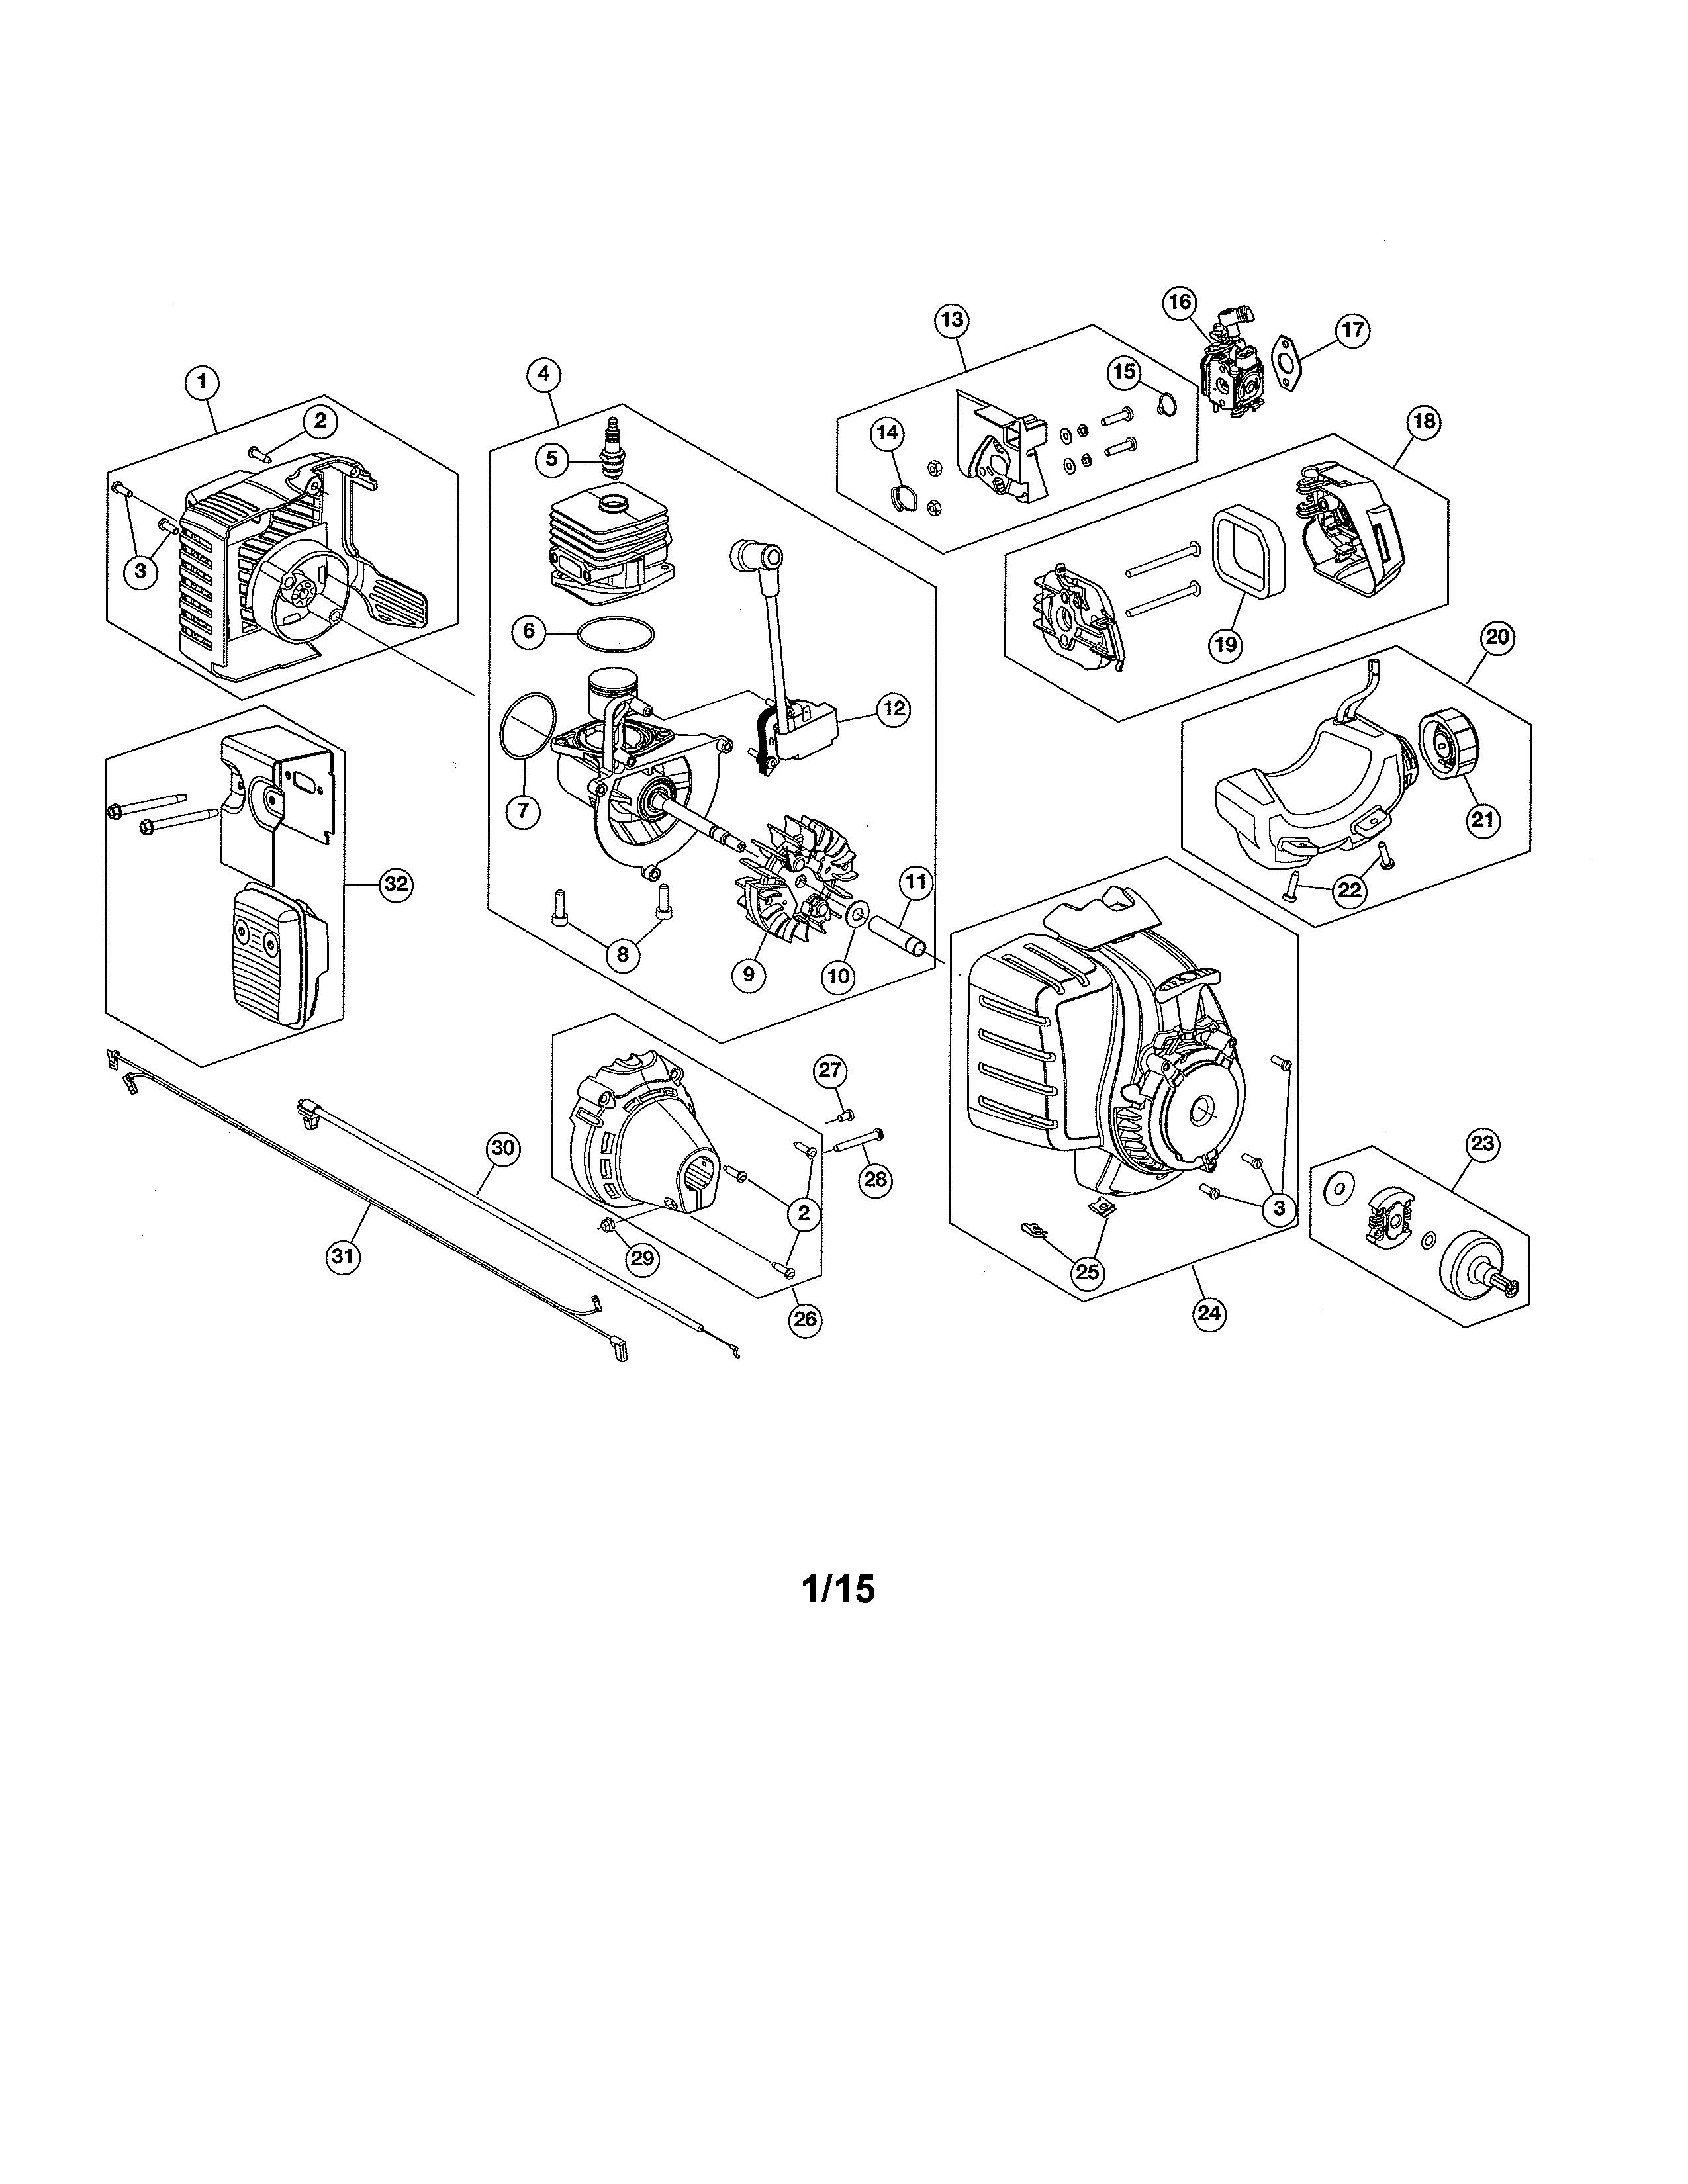 Craftsman Weed Eater Parts Diagram Nifty Fuel Filter